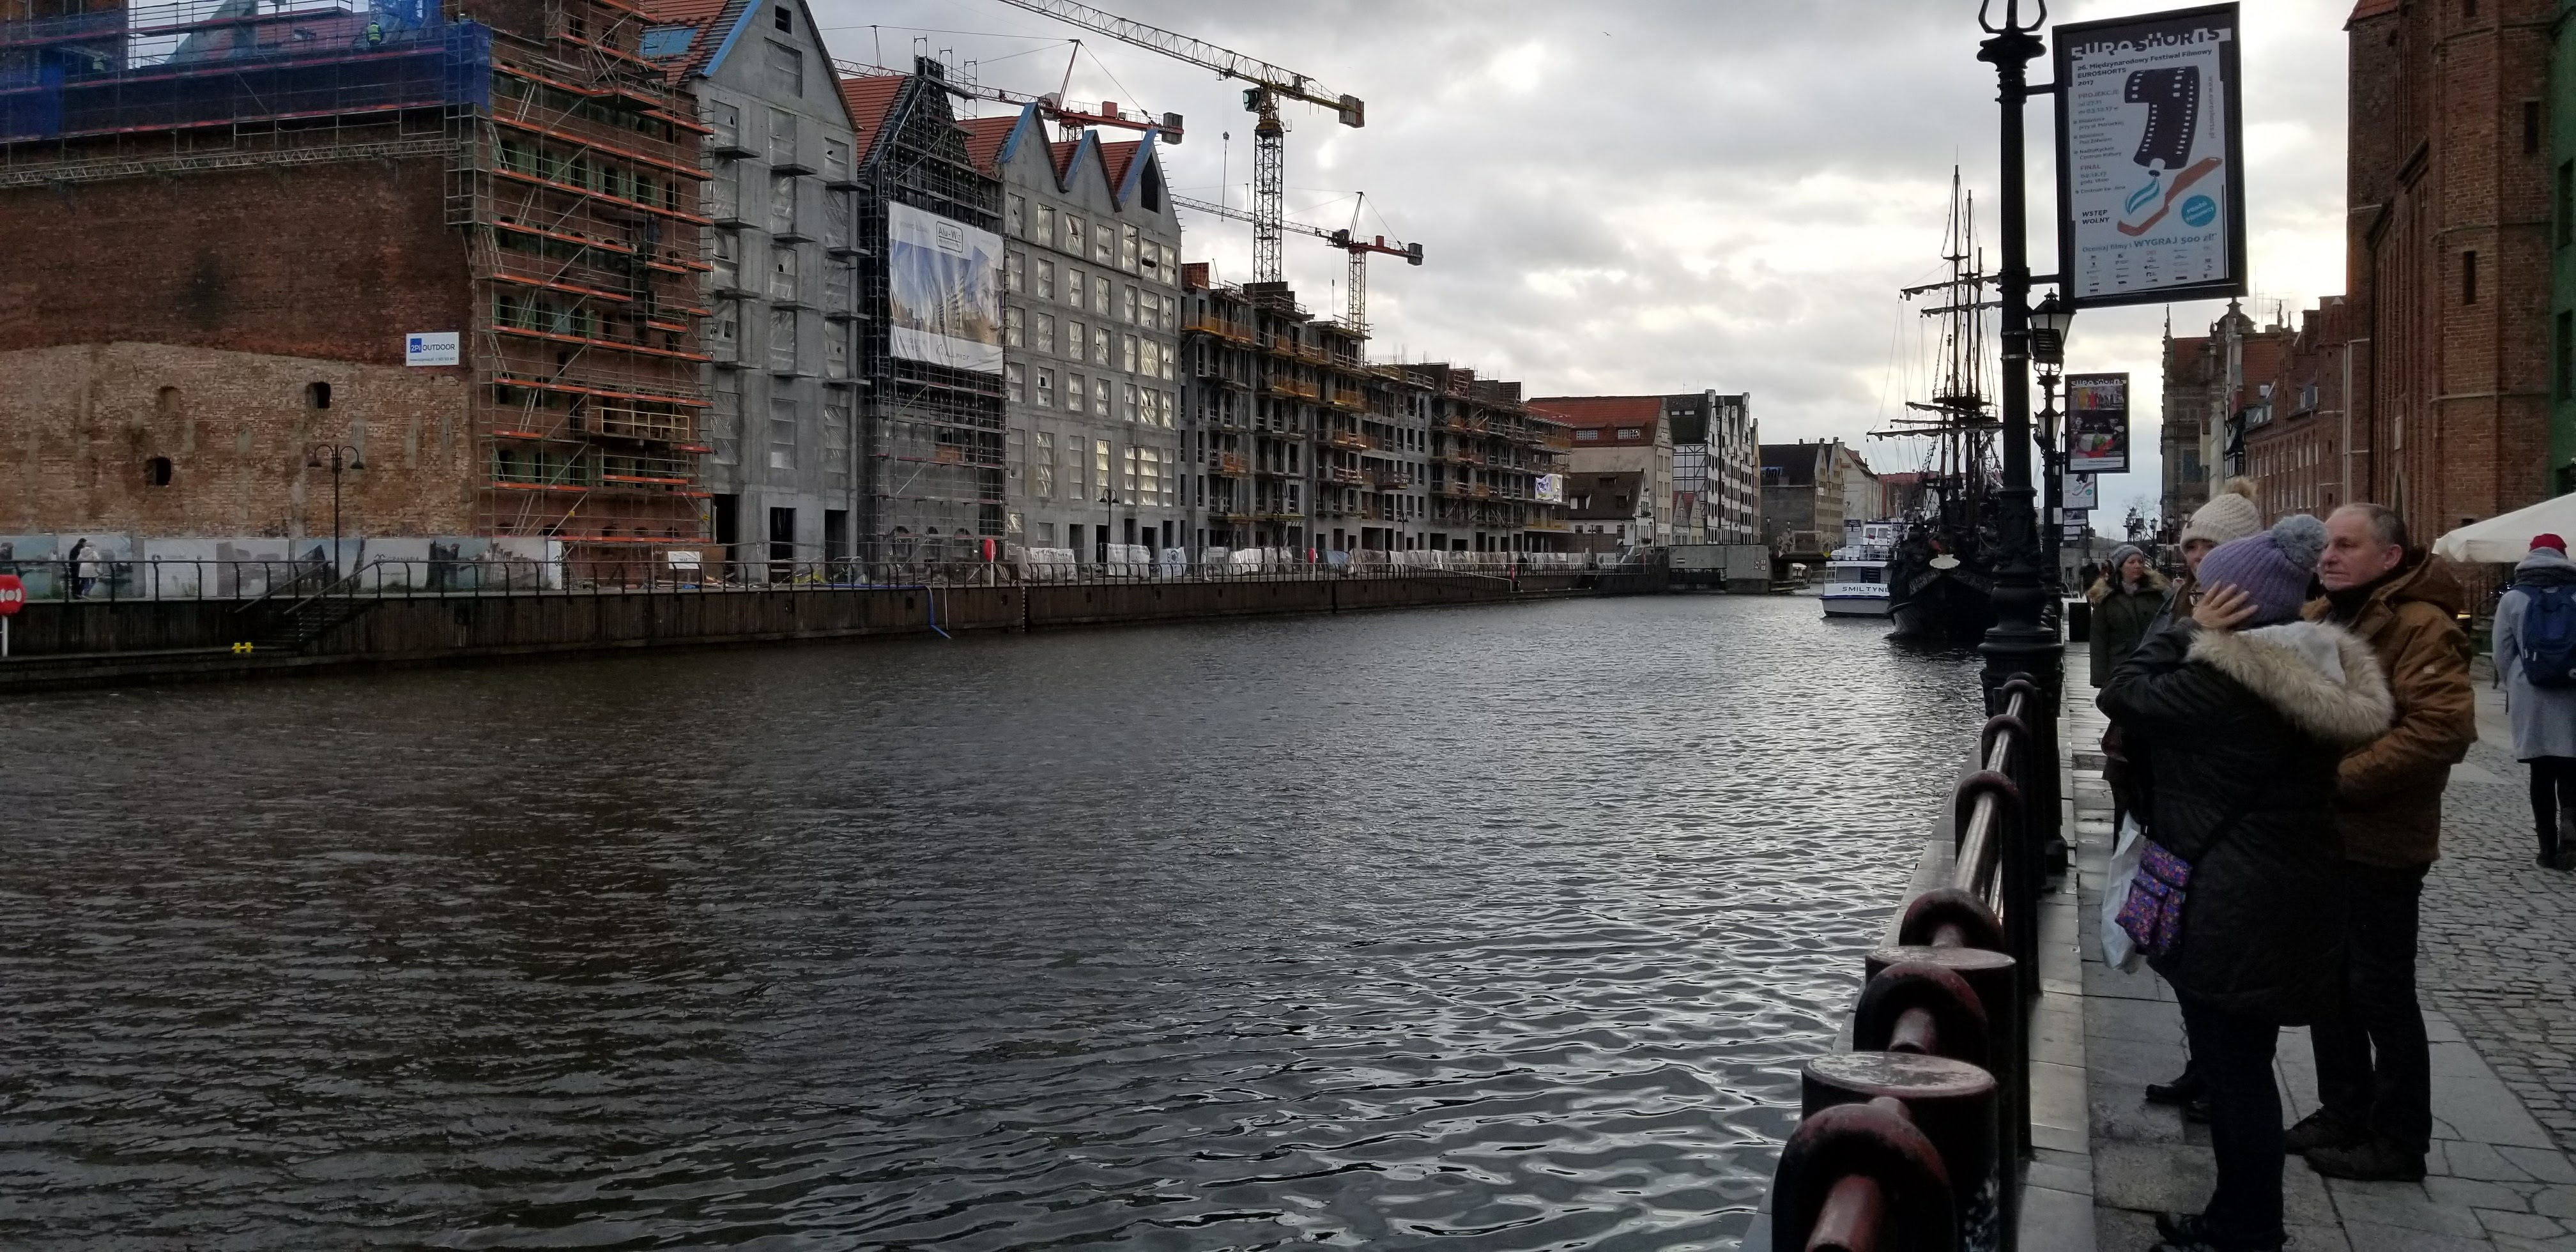 CAPAStudyAbroad_London_Fall2017_From Thaddeus Kaszuba - The Town of Gdansk on the River in Poland.jpg